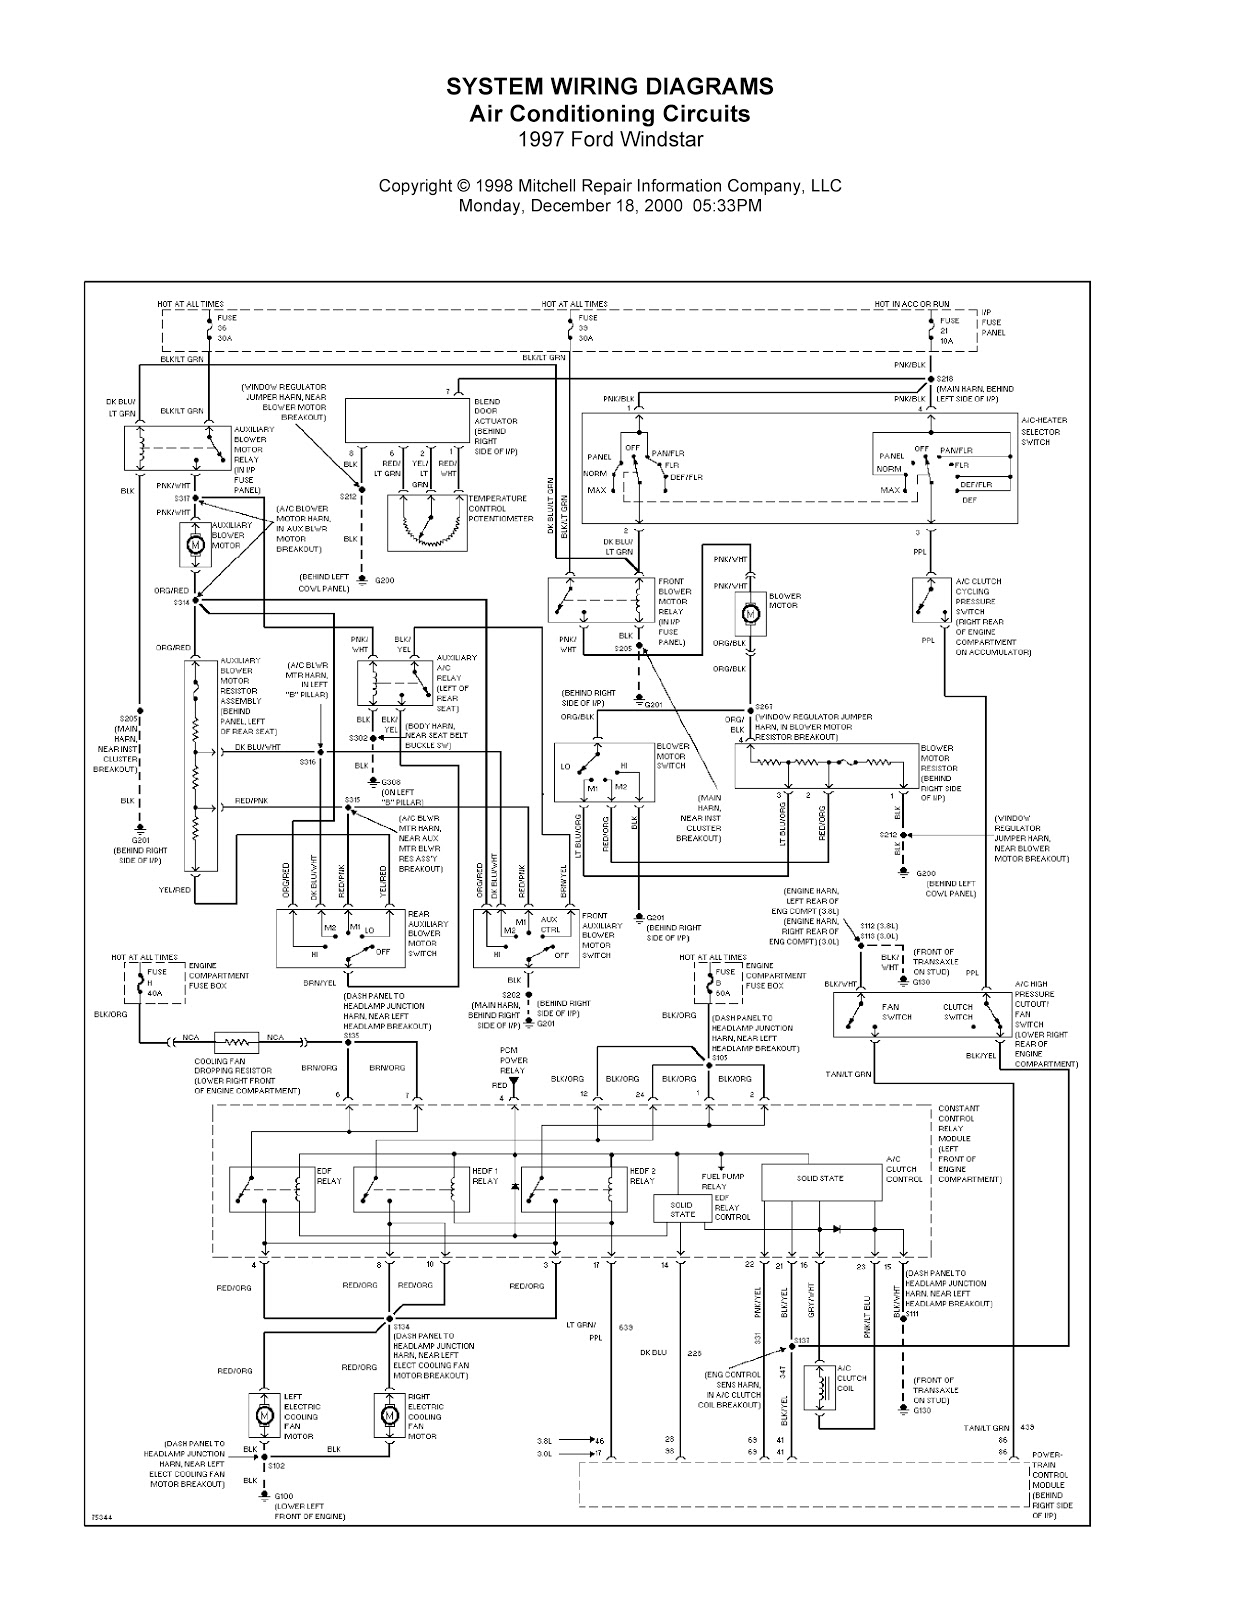 0001 1997 ford windstar complete system wiring diagrams wiring 2000 ford windstar wiring diagram at gsmportal.co